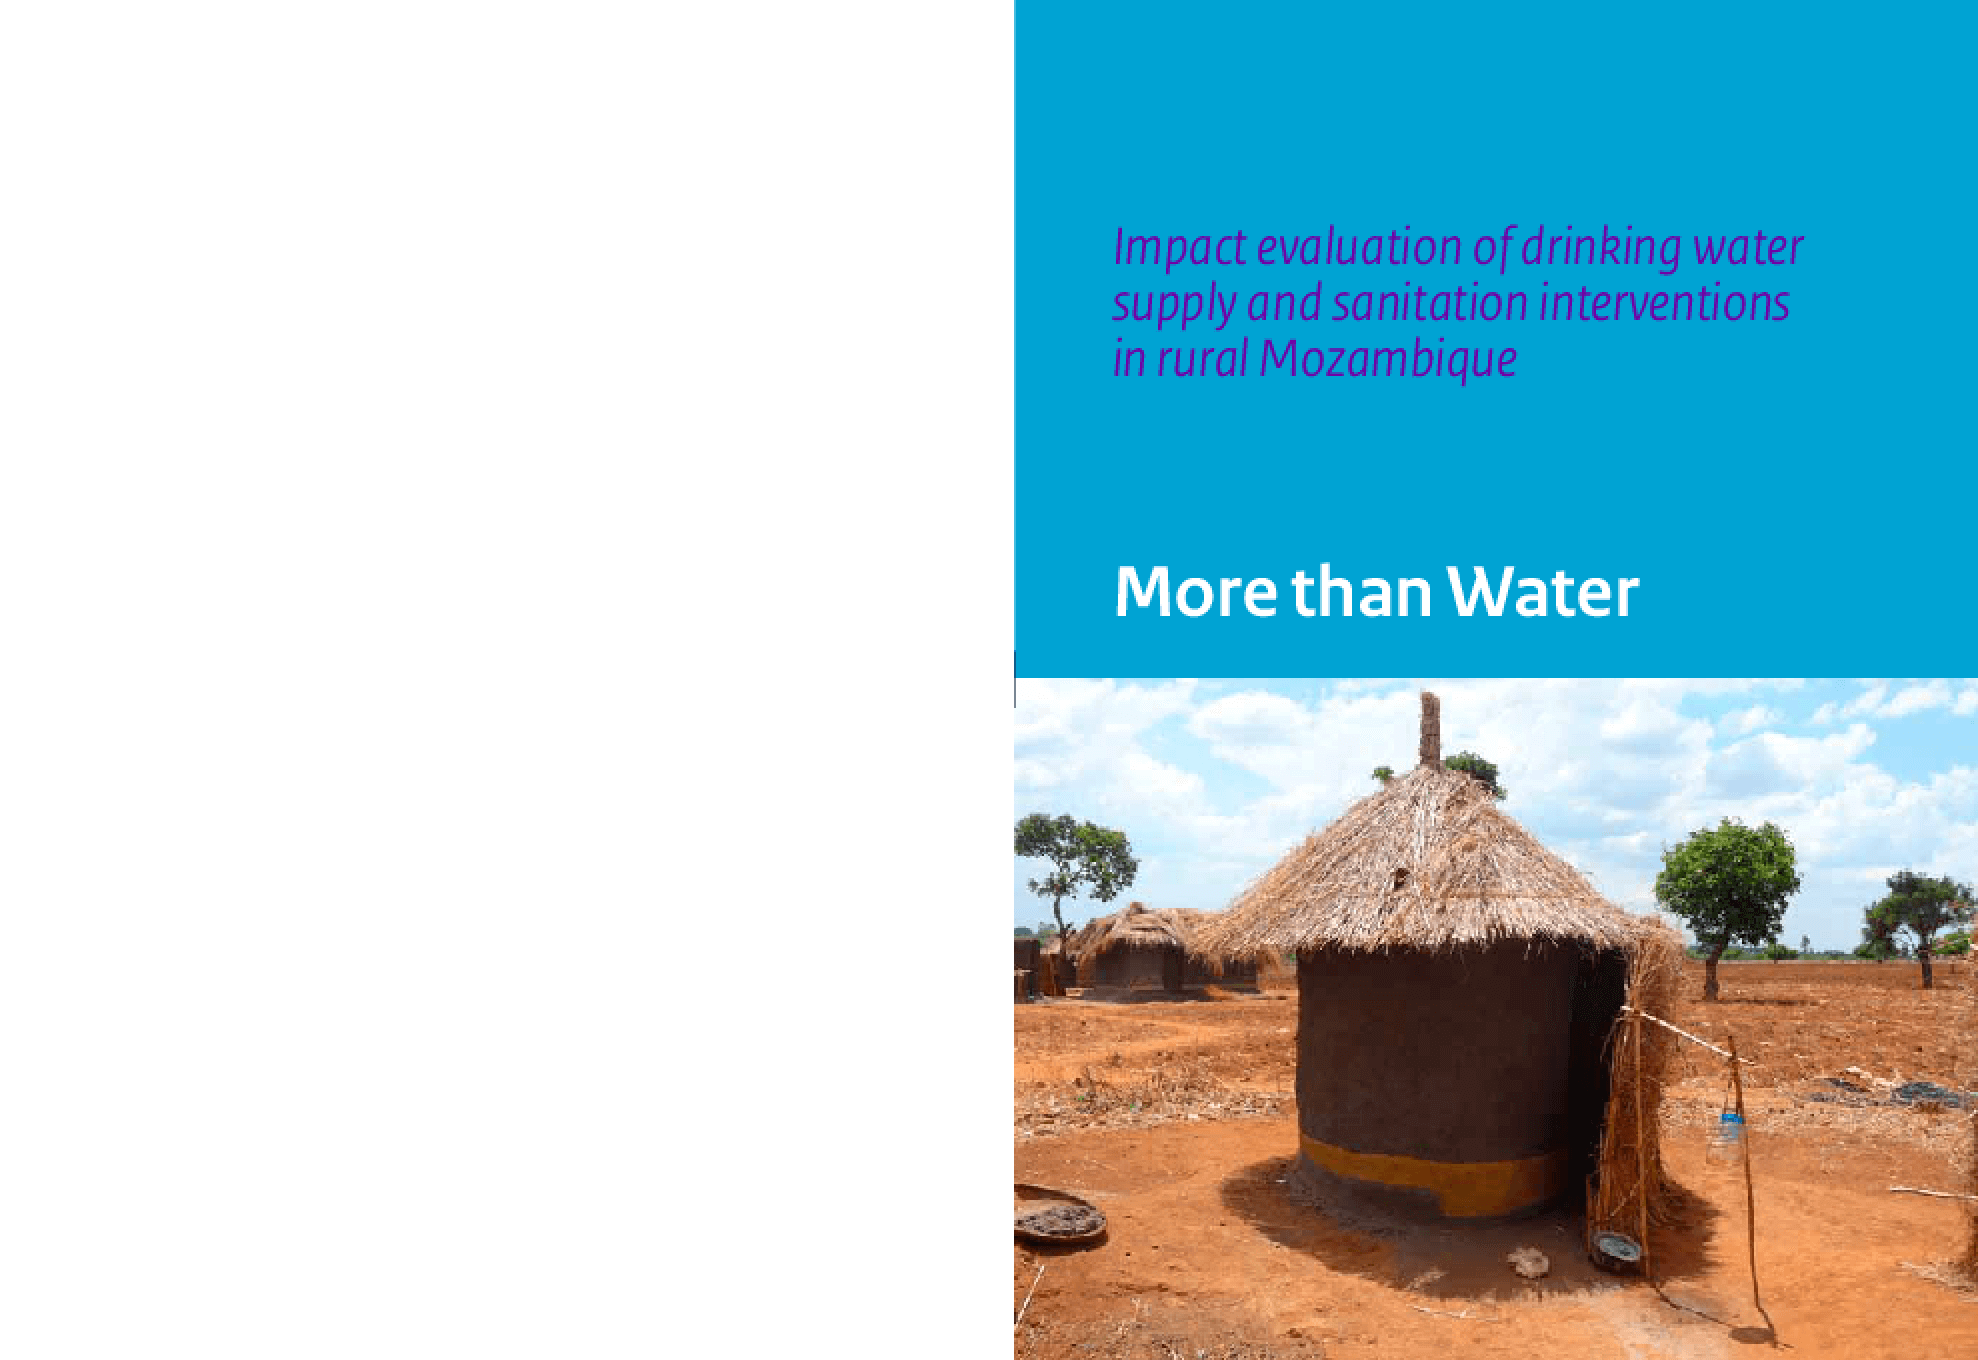 Impact Evaluation of Drinking Water Supply and Sanitation Interventions in Rural Mozambique: More Than Water